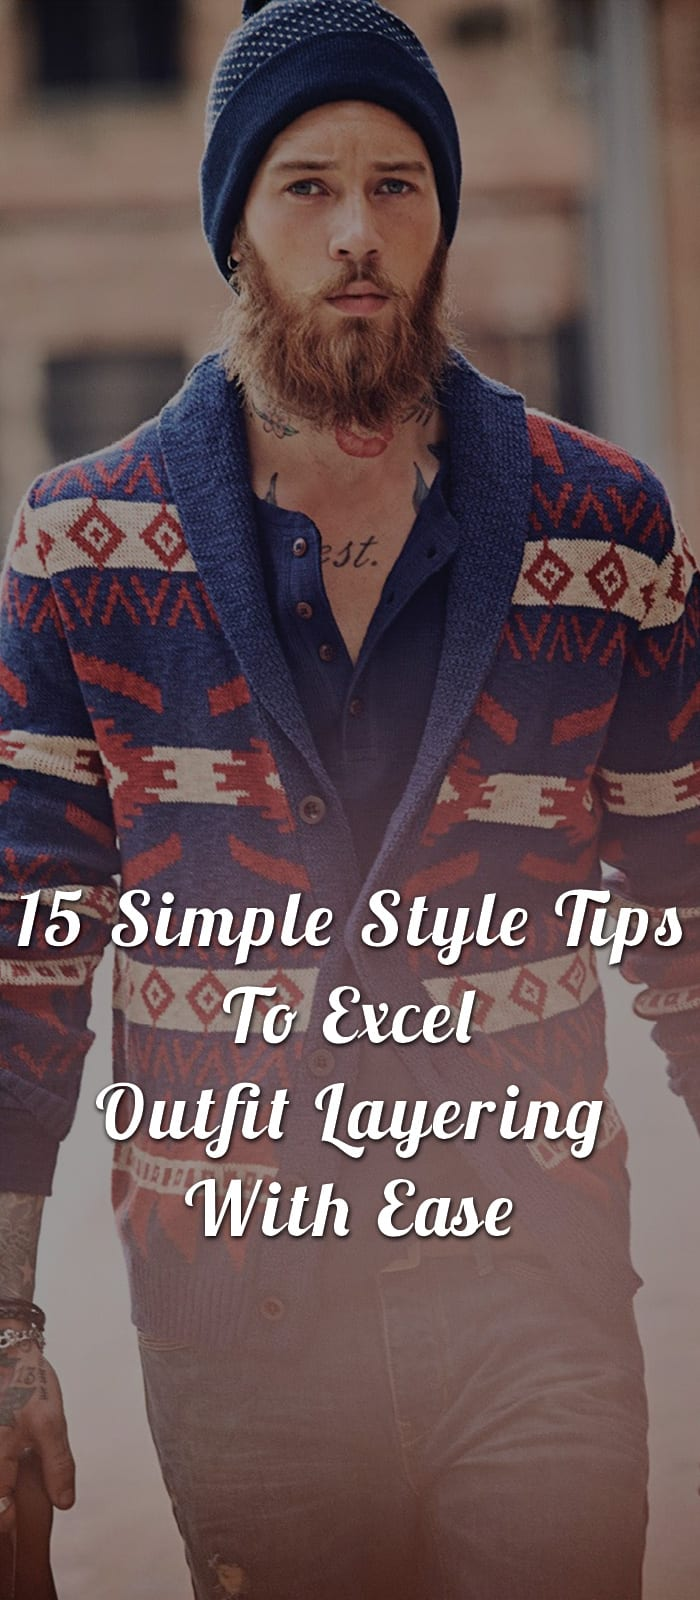 15-Simple-Style-Tips-To-Excel-Outfit-Layering-With-Ease